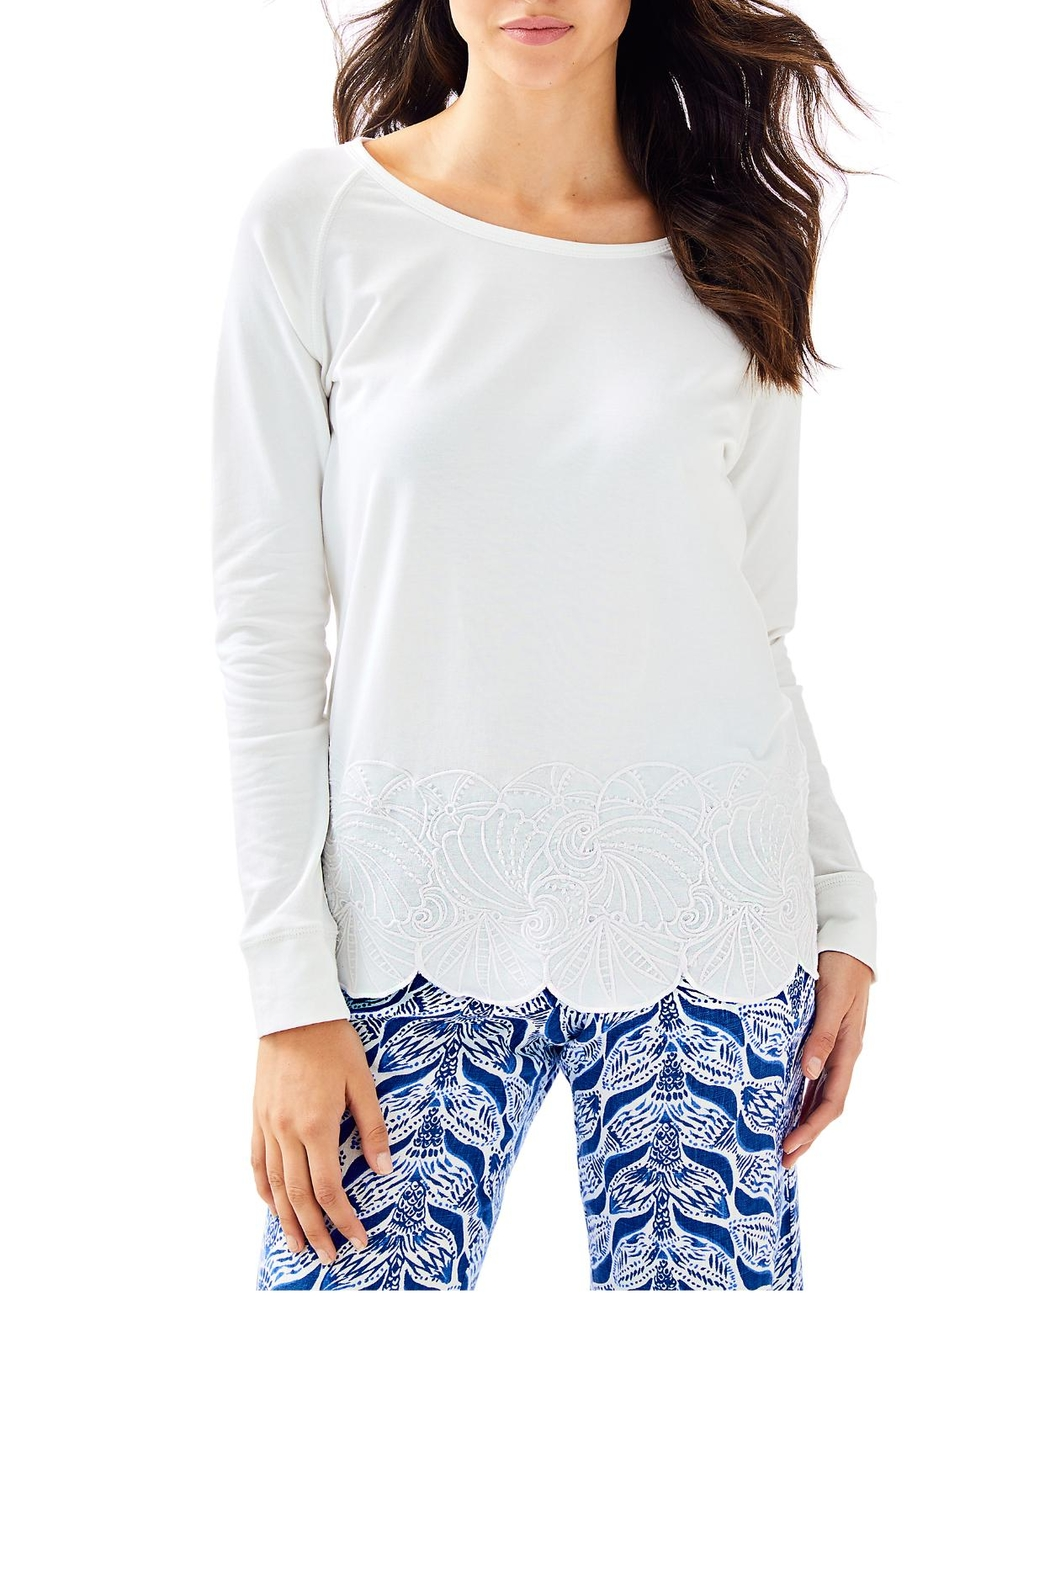 Lilly Pulitzer Sandy Embroidery Popover - Main Image